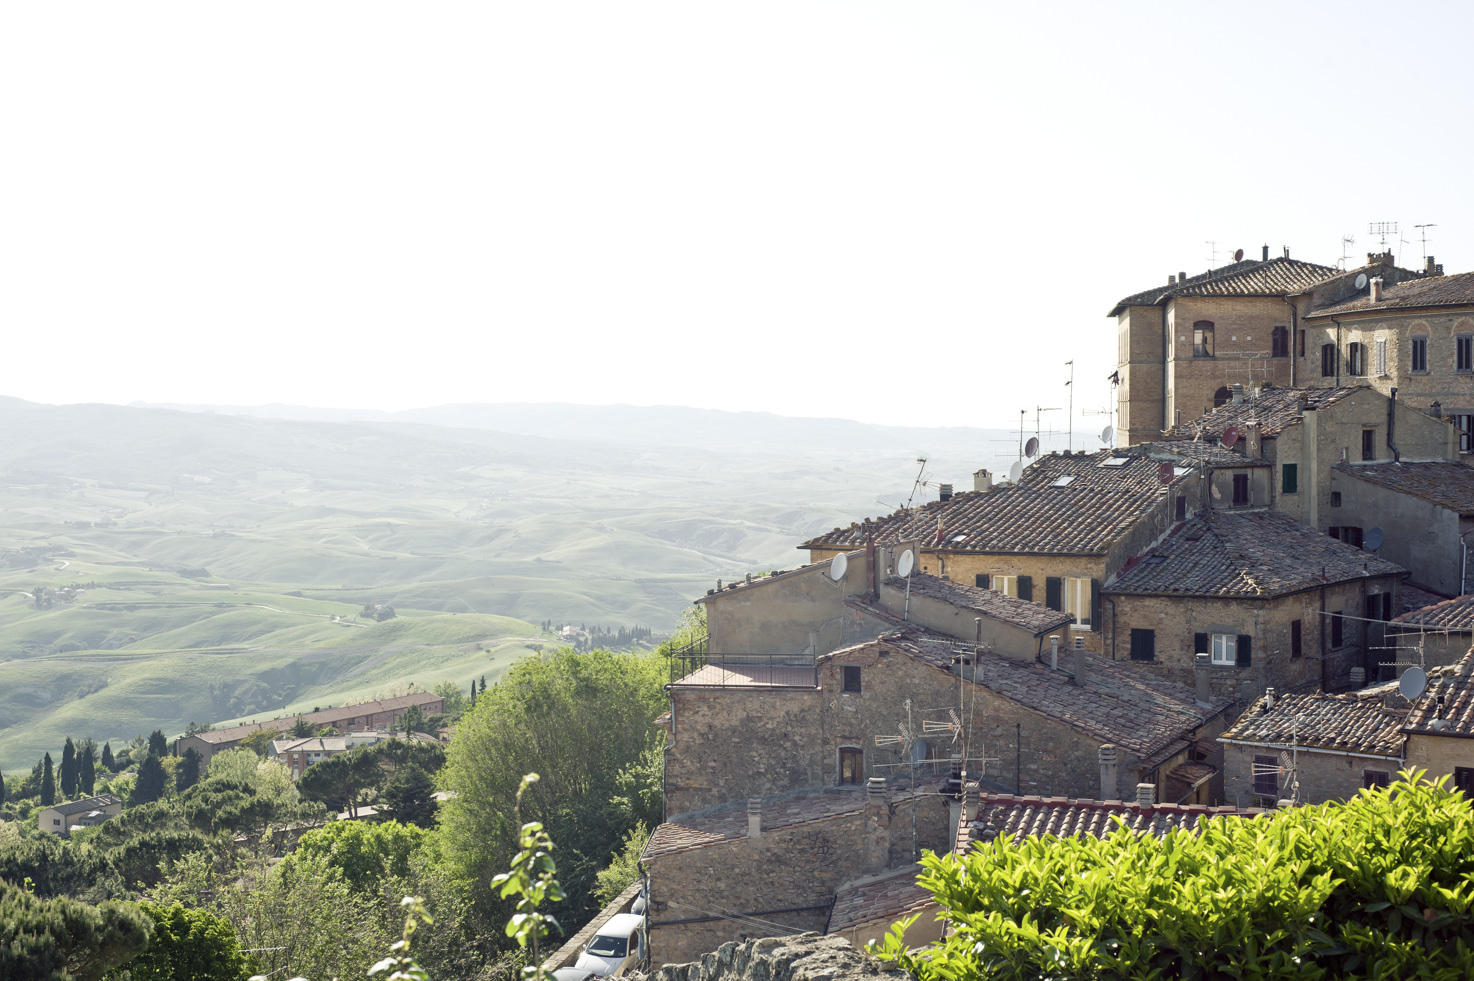 Panorama of the old town of Volterra